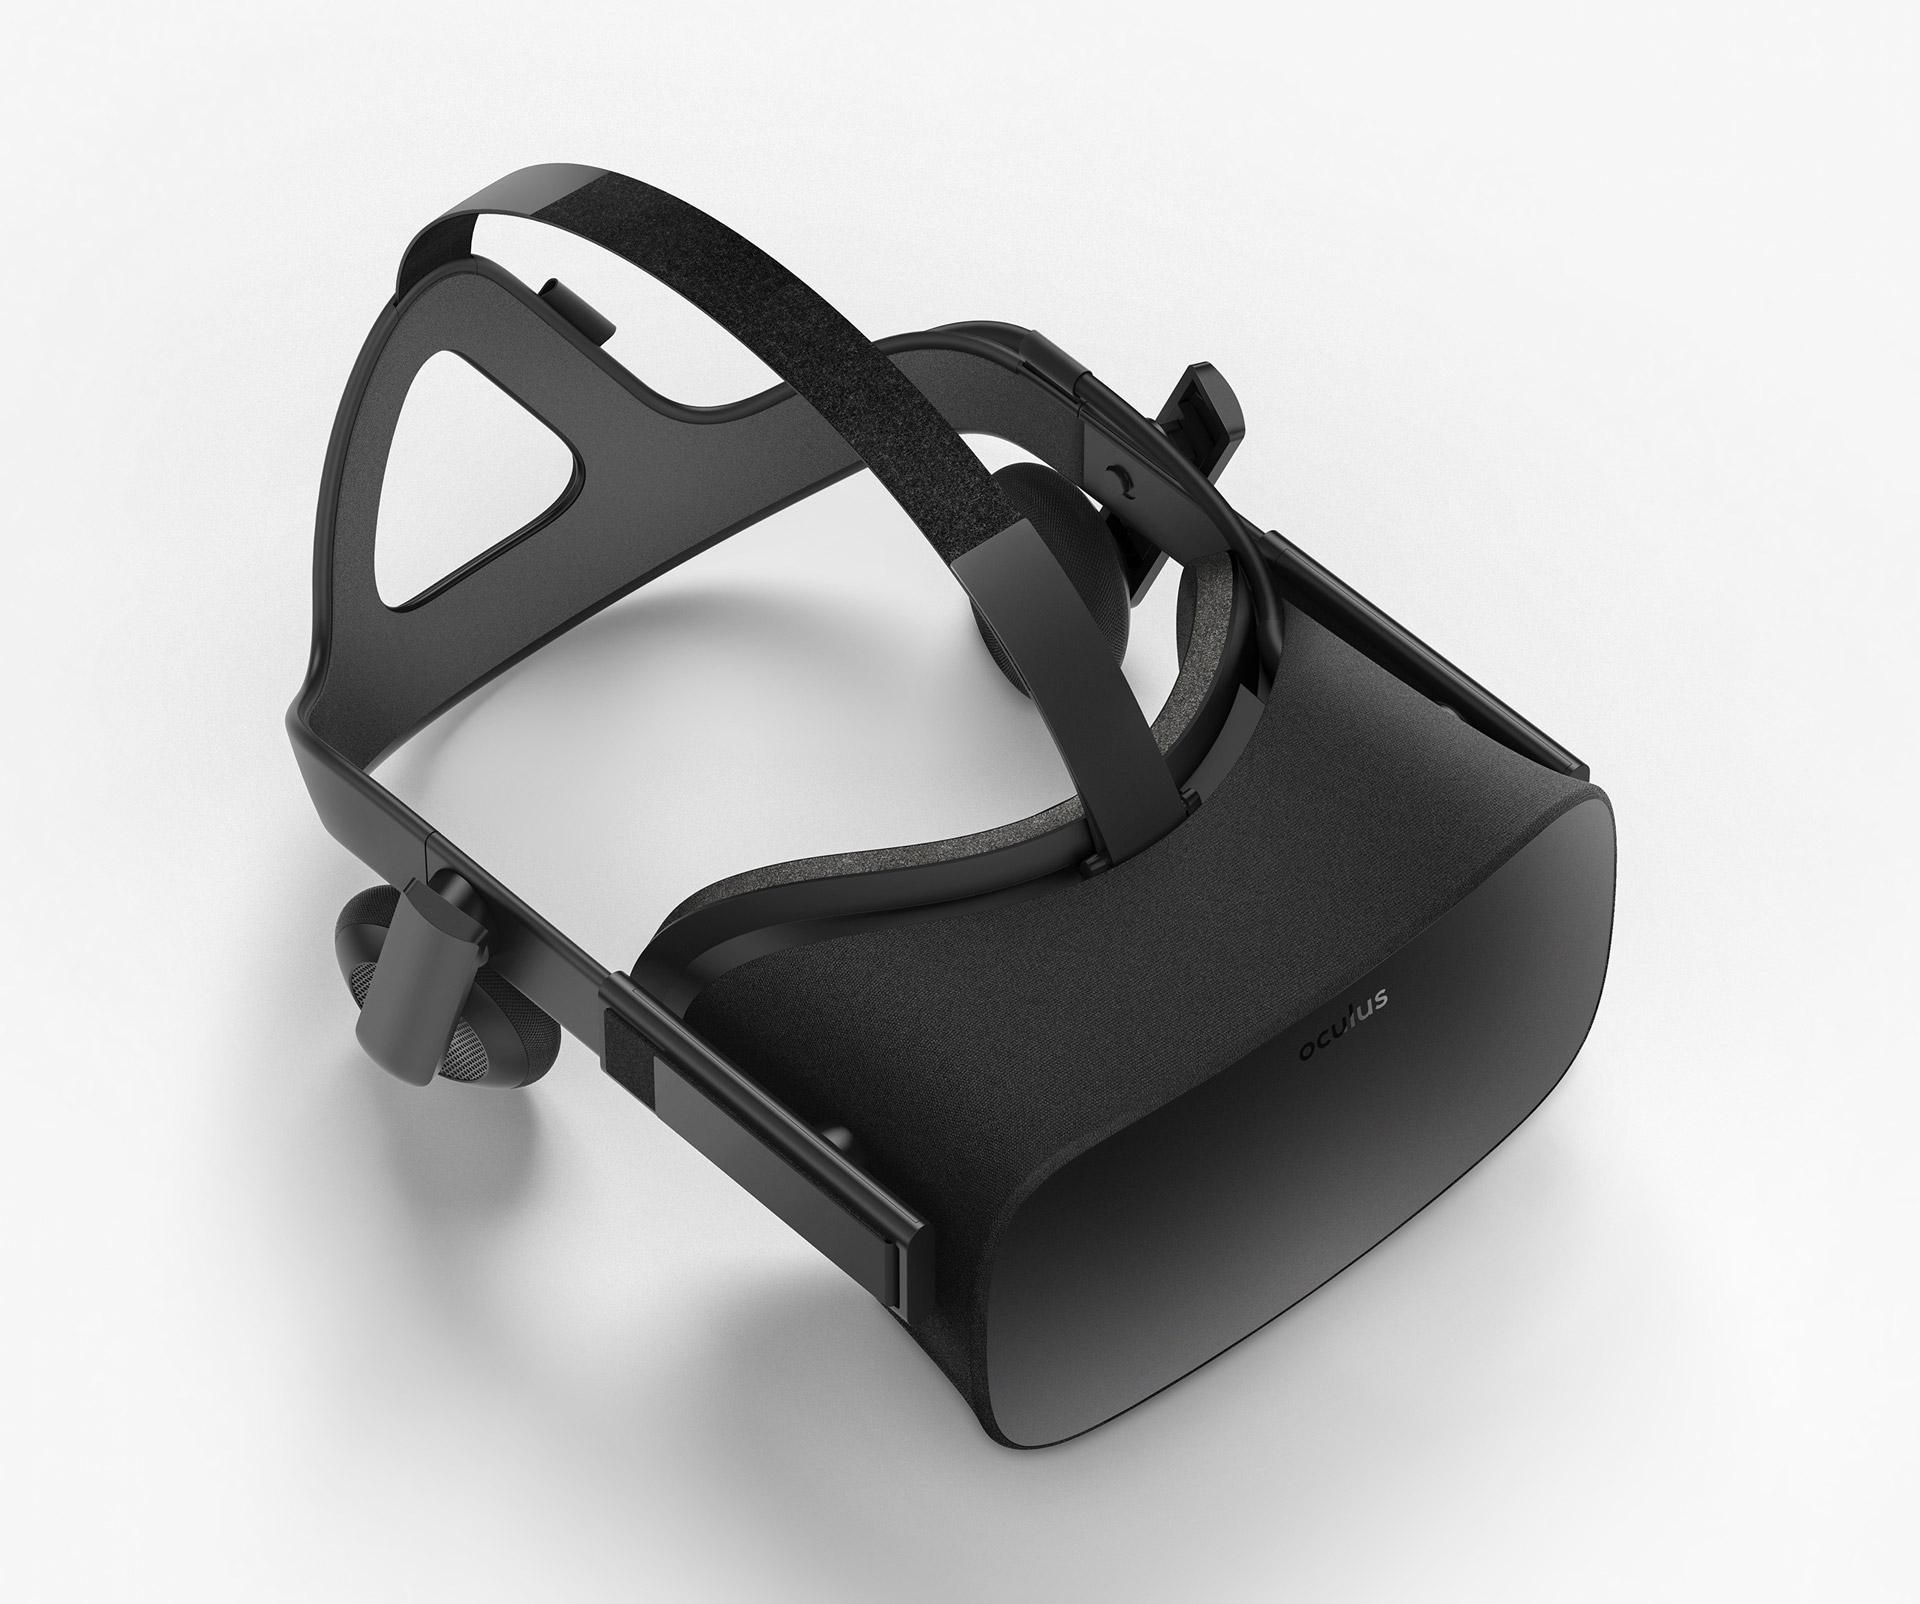 oculus-rift-top-side.jpg